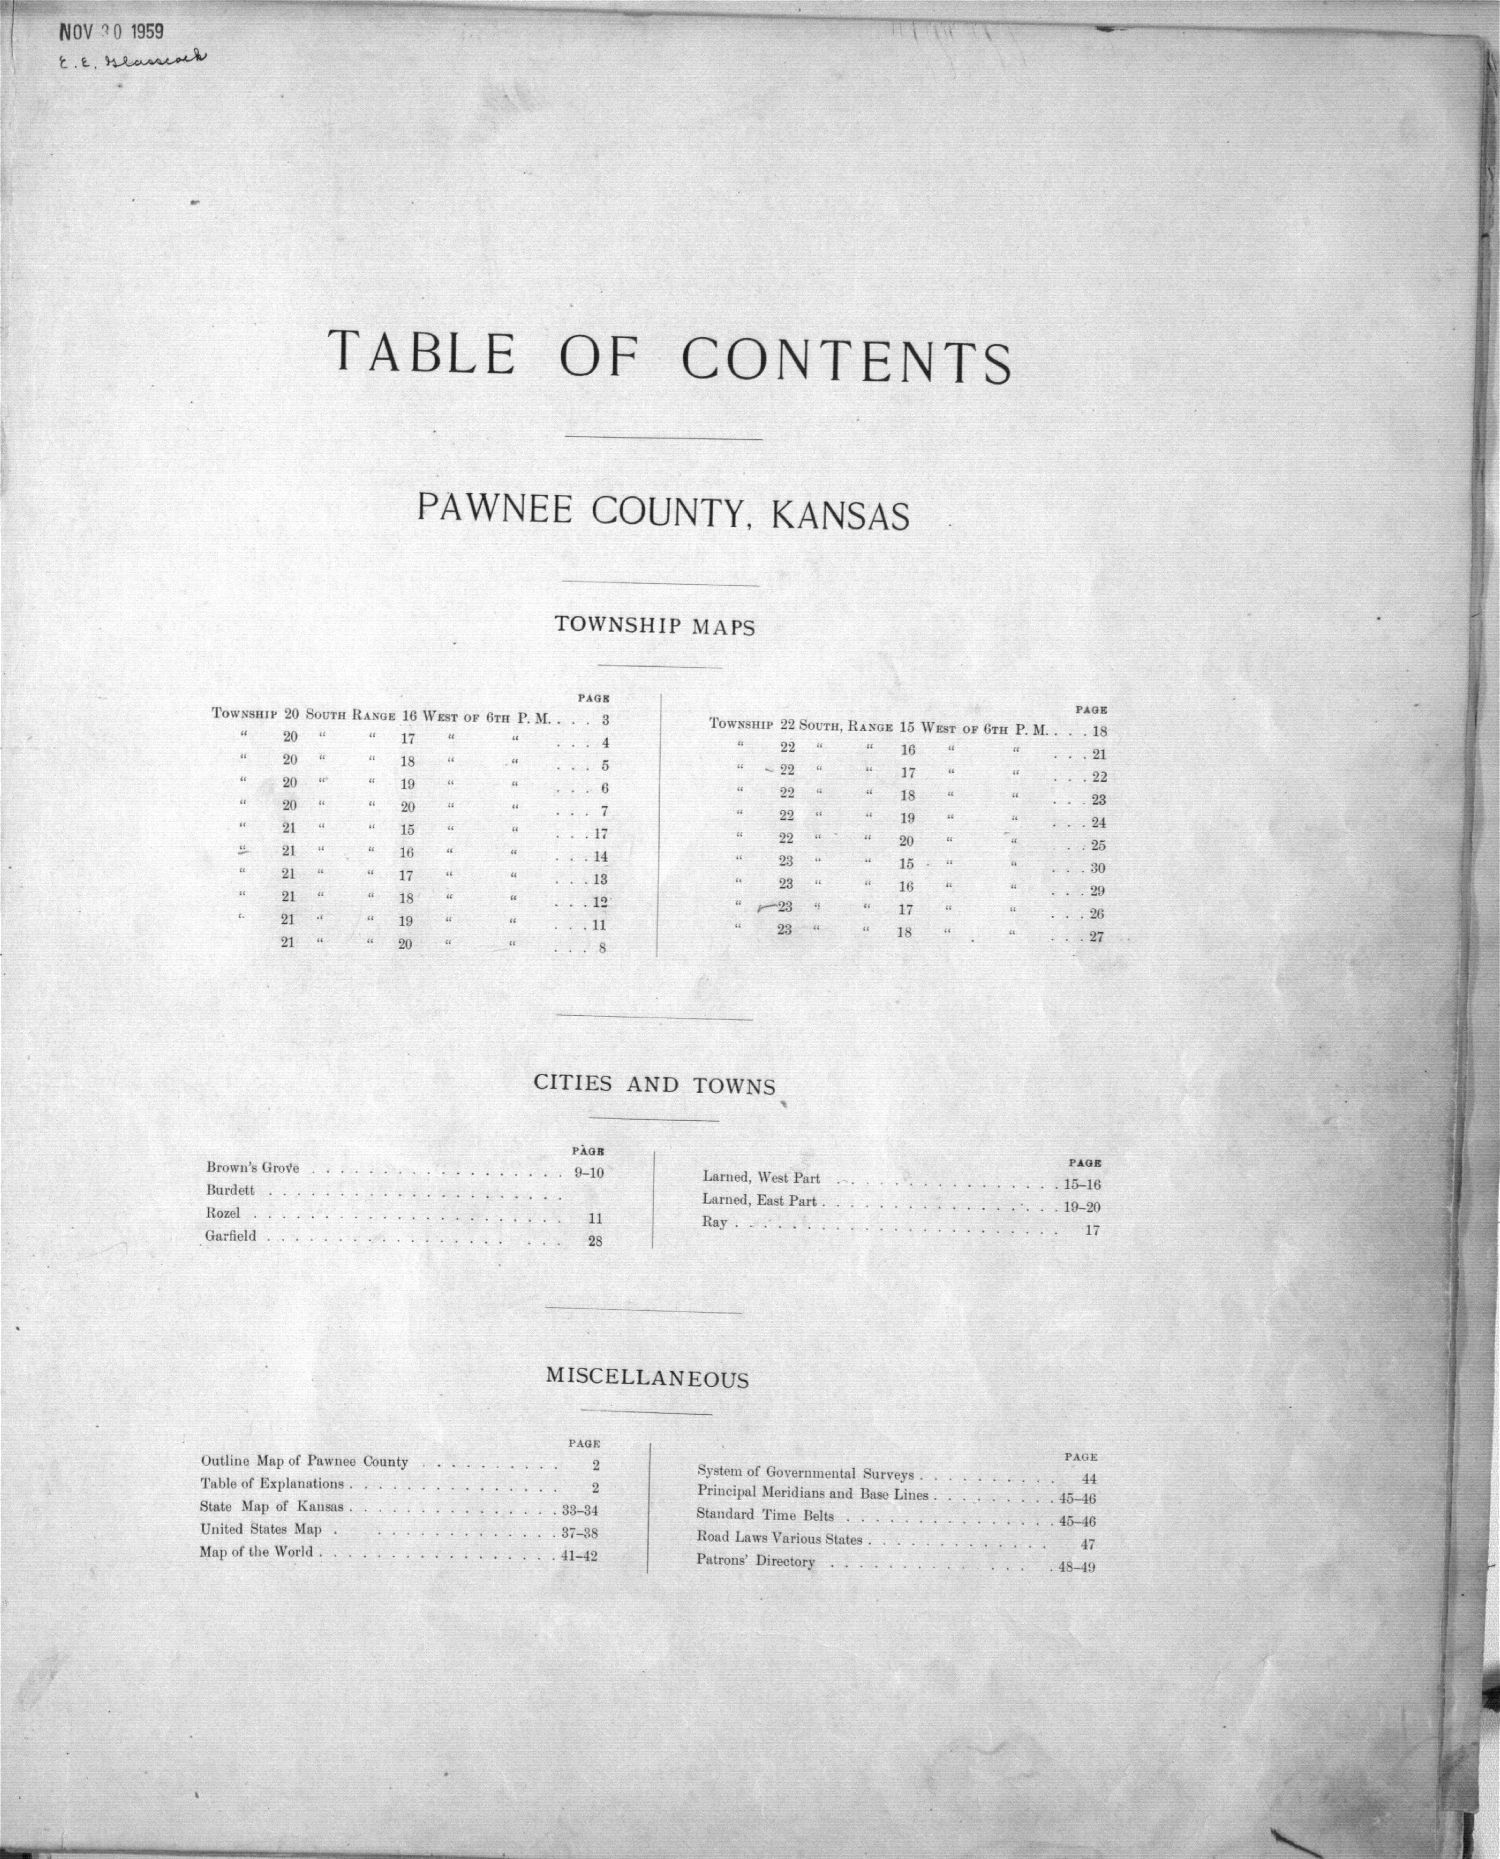 Plat book of Pawnee County, Kansas - Table of Contents